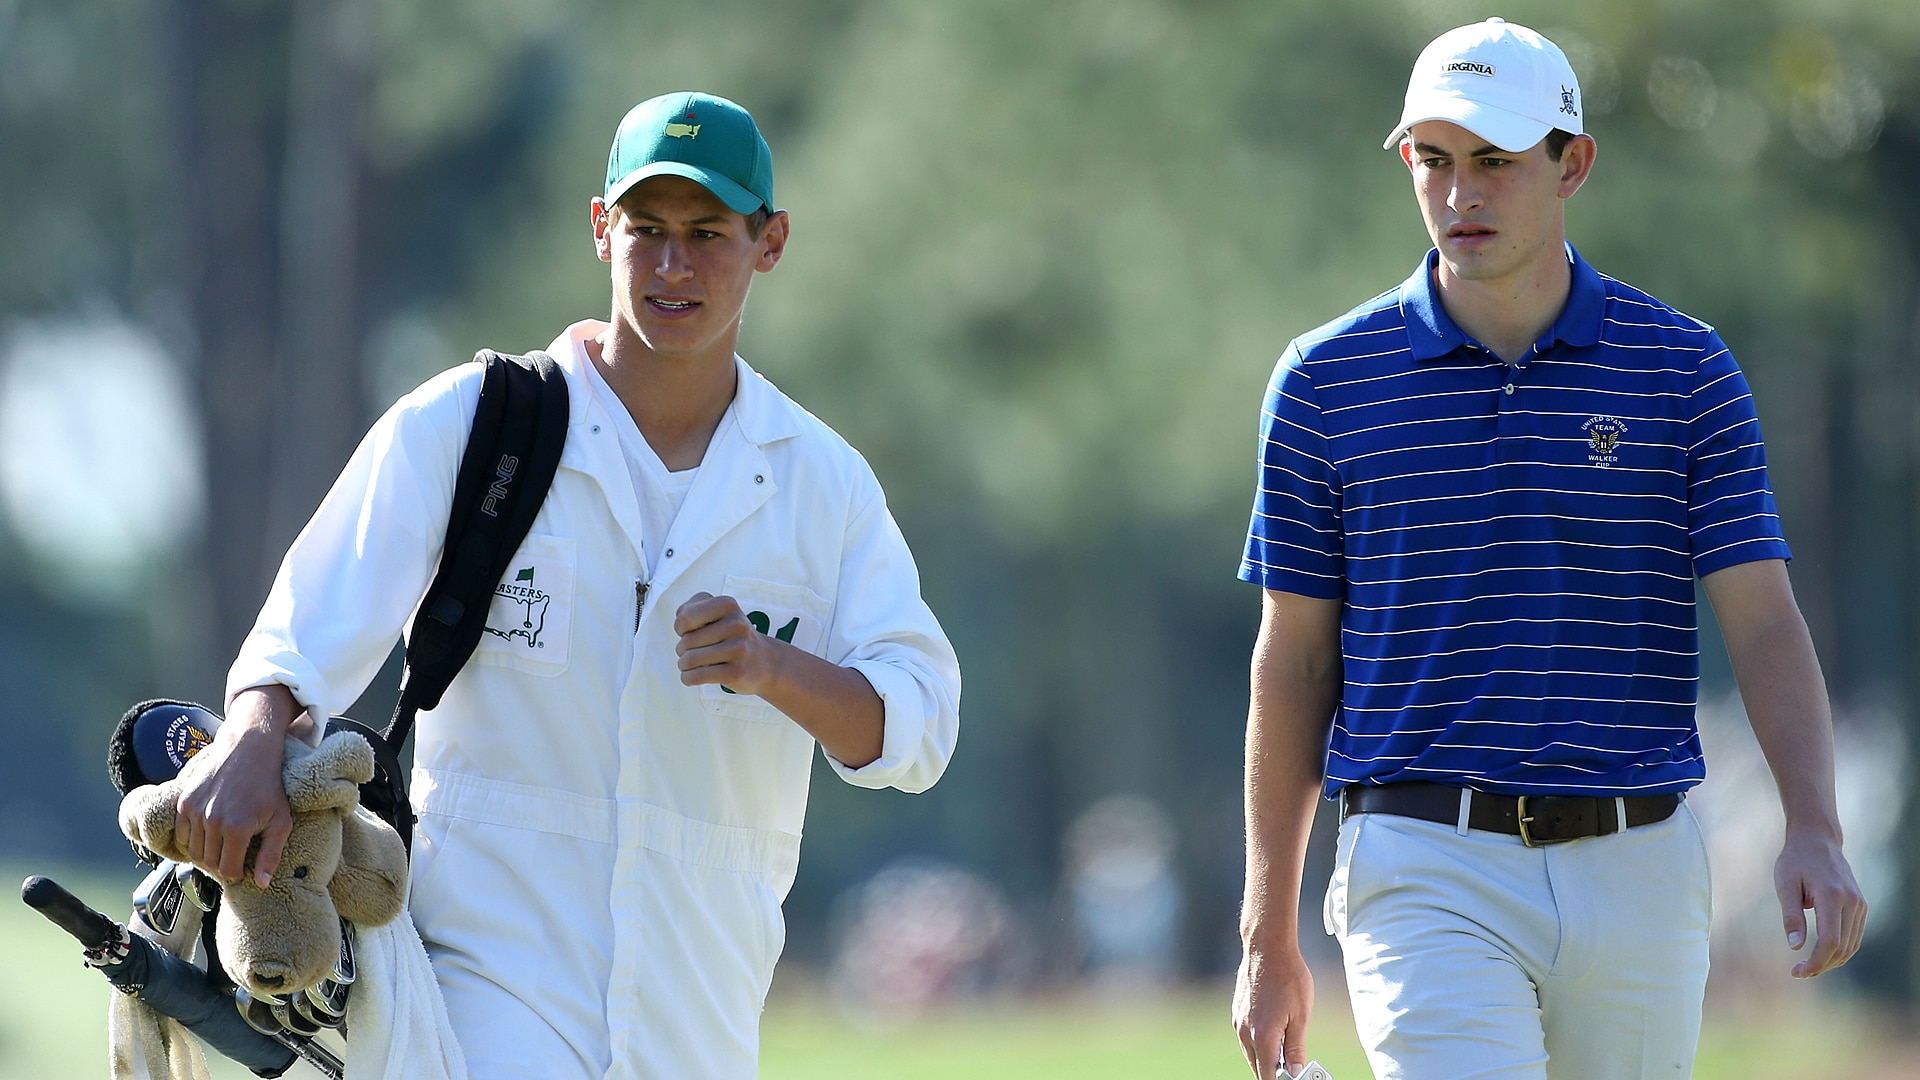 Years Later Patrick Cantlay Returns From Injury Tragedy